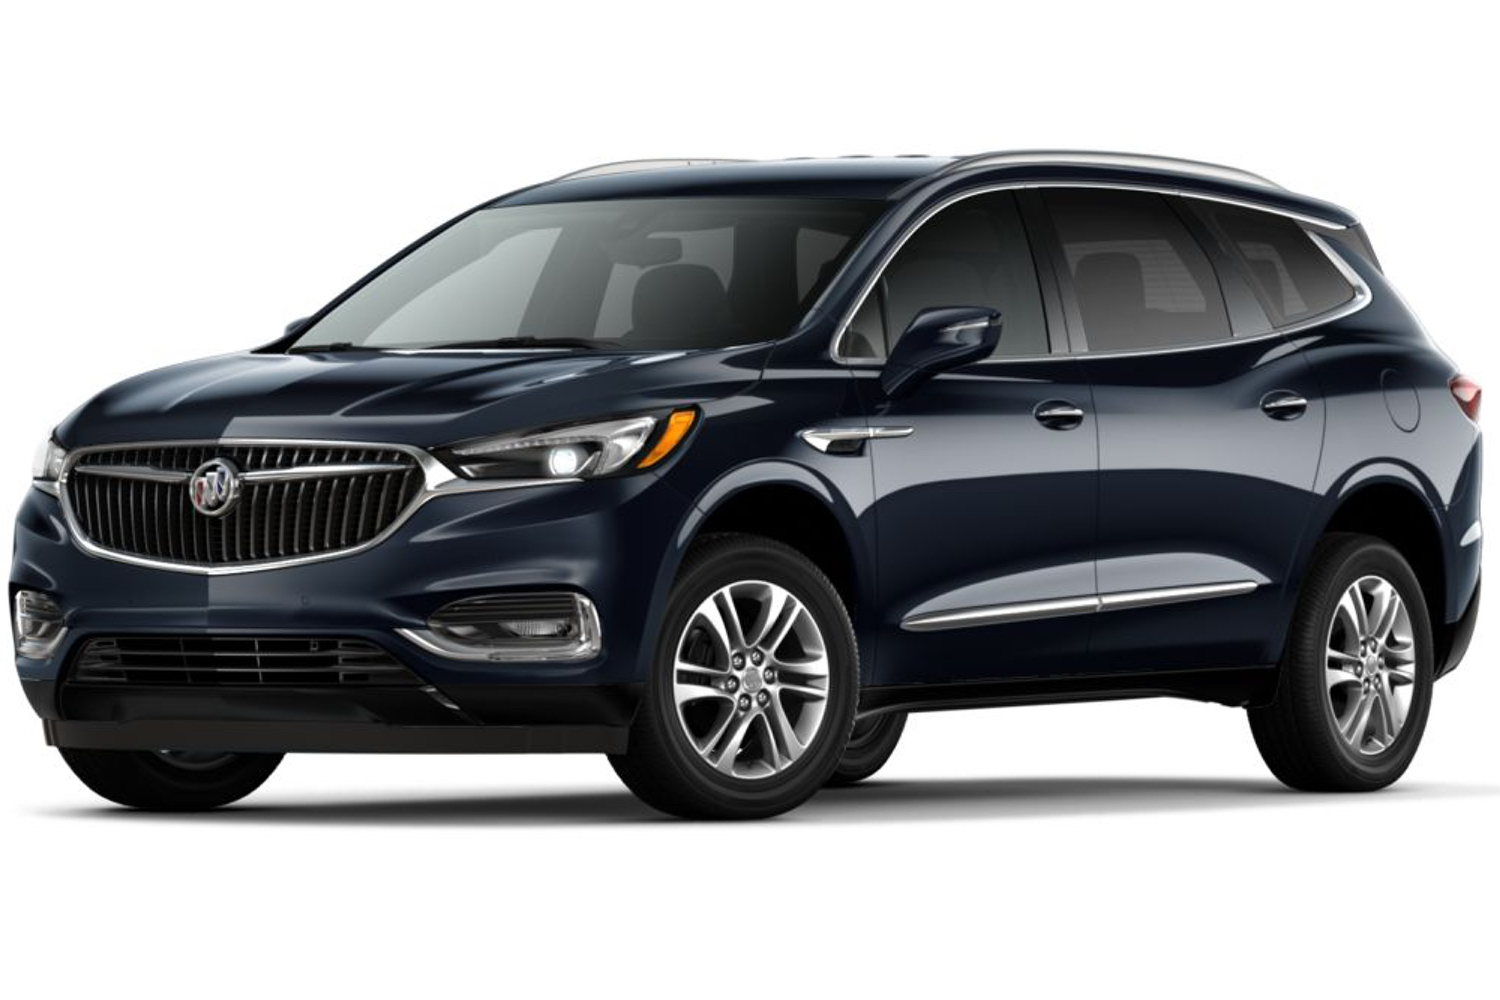 2020 Buick Enclave Gets New Dark Moon Blue Color | Gm Authority 2022 Buick Enclave Discounts, Discontinued, Exterior Colors